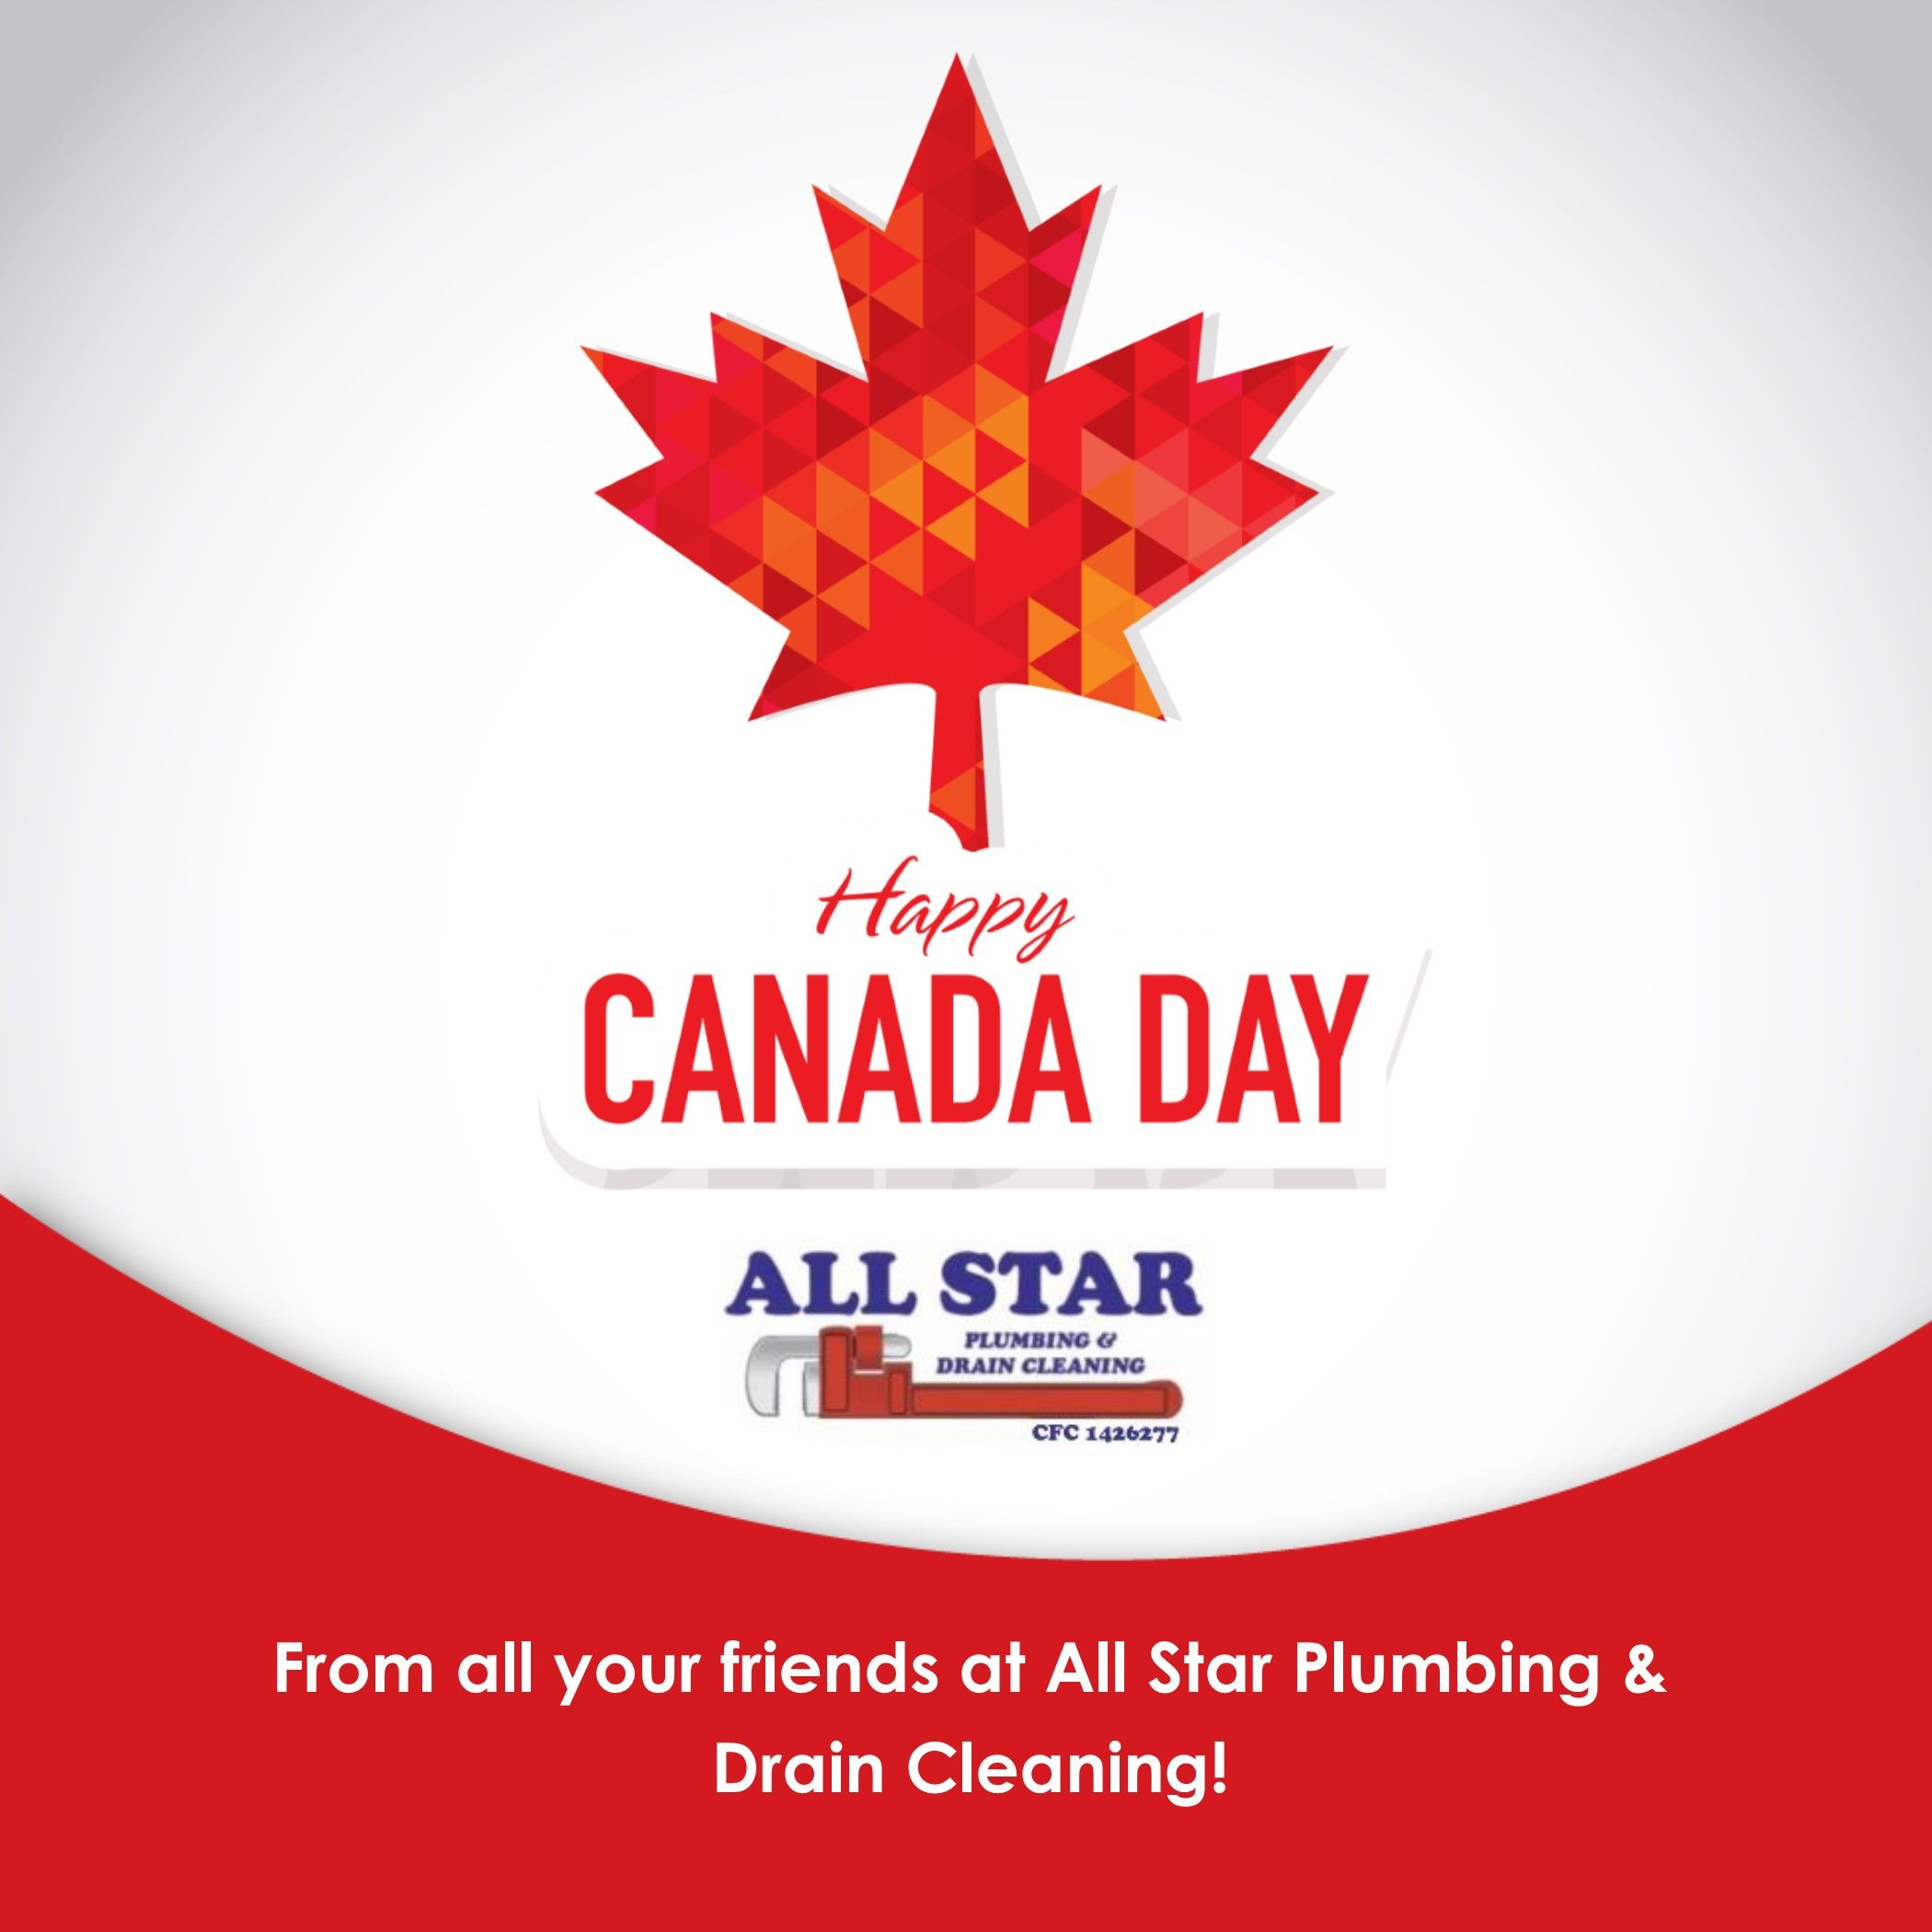 Happy Canada Day To All Of Our Canadian All Star Family Funfact